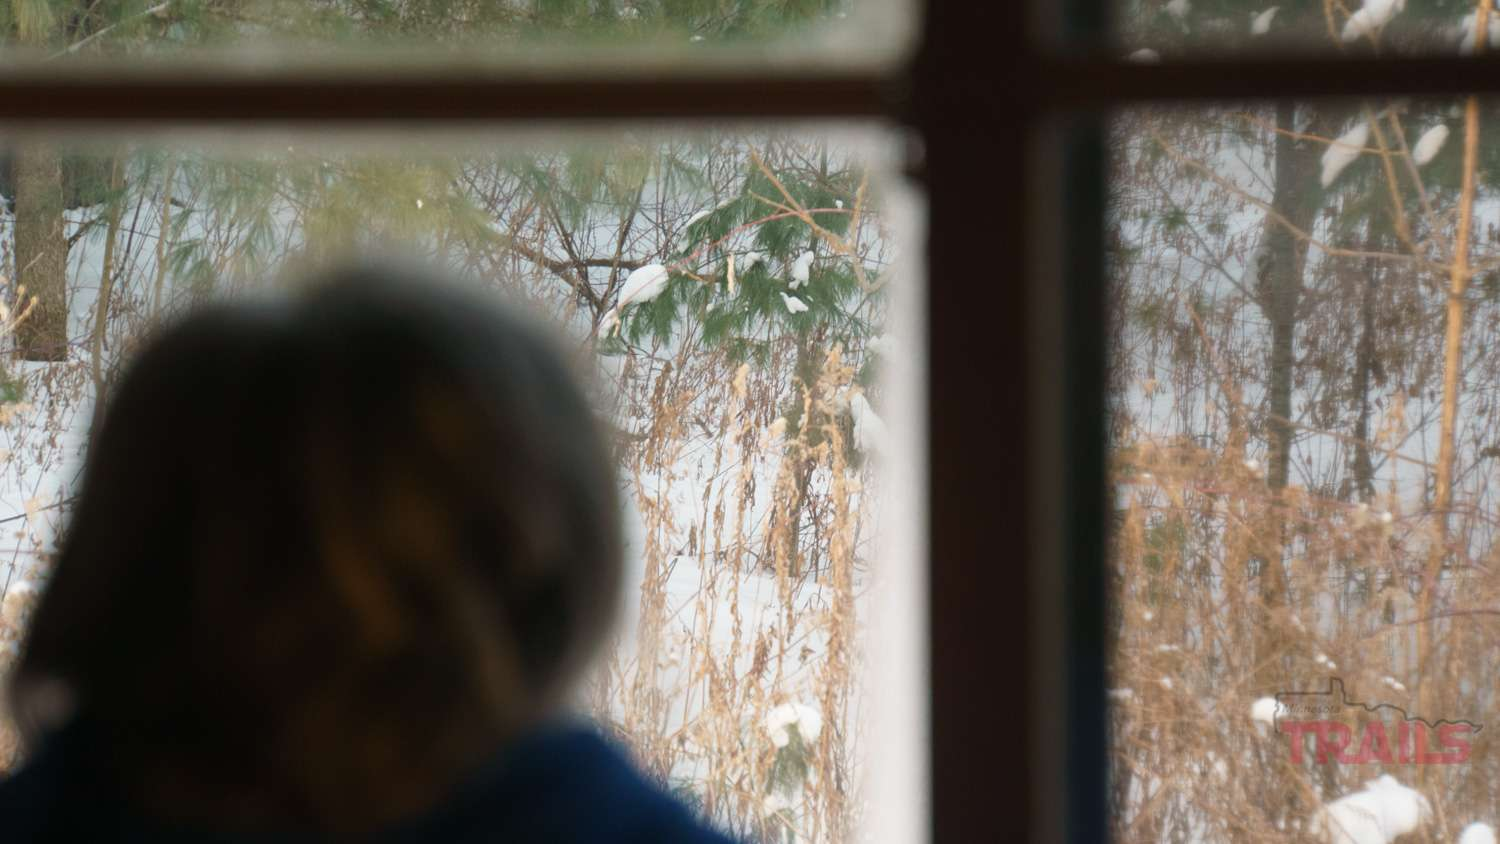 A woman looks out of a window onto a snowy landscape